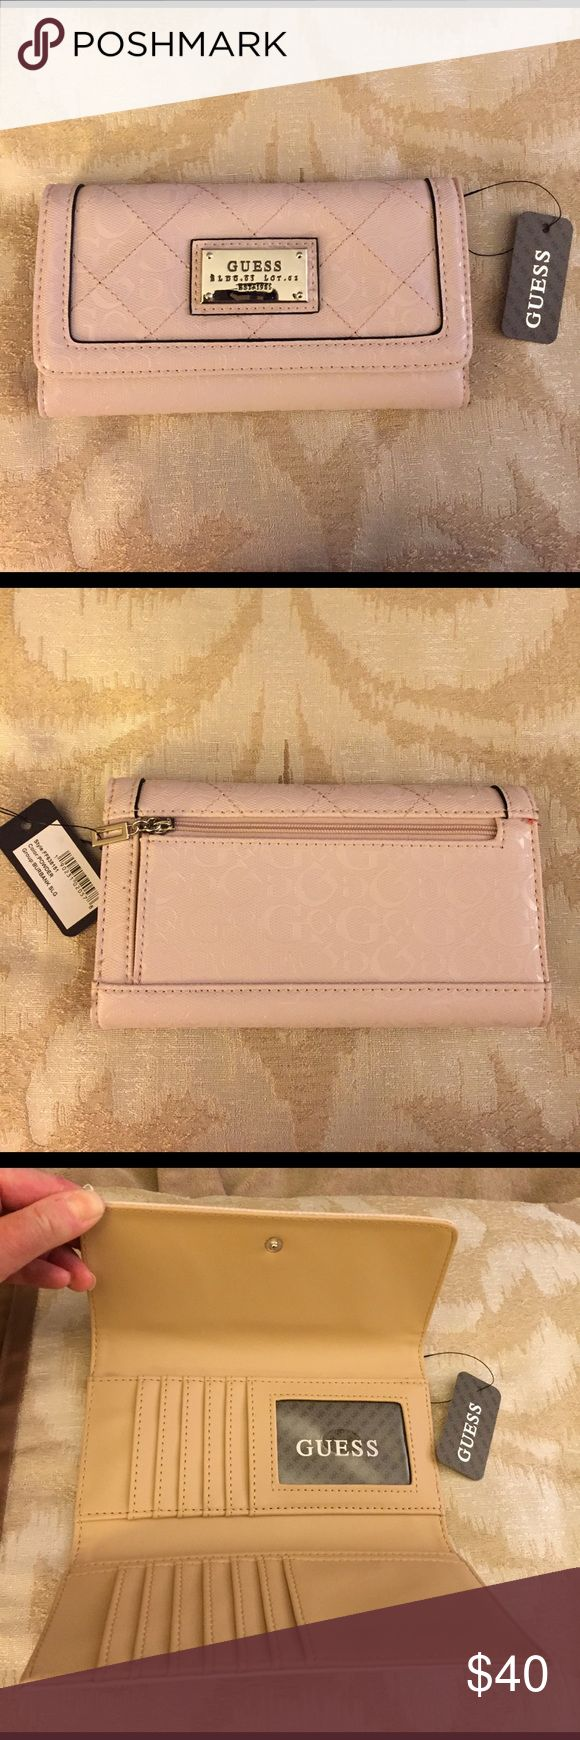 """NEW GUESS TRI-FOLD WALLET New Guess tri-fold wallet..Burbank SLG group..powder color..measurements 7"""" x 4""""..brand new with tags..refer to pics.. Guess Bags Wallets"""